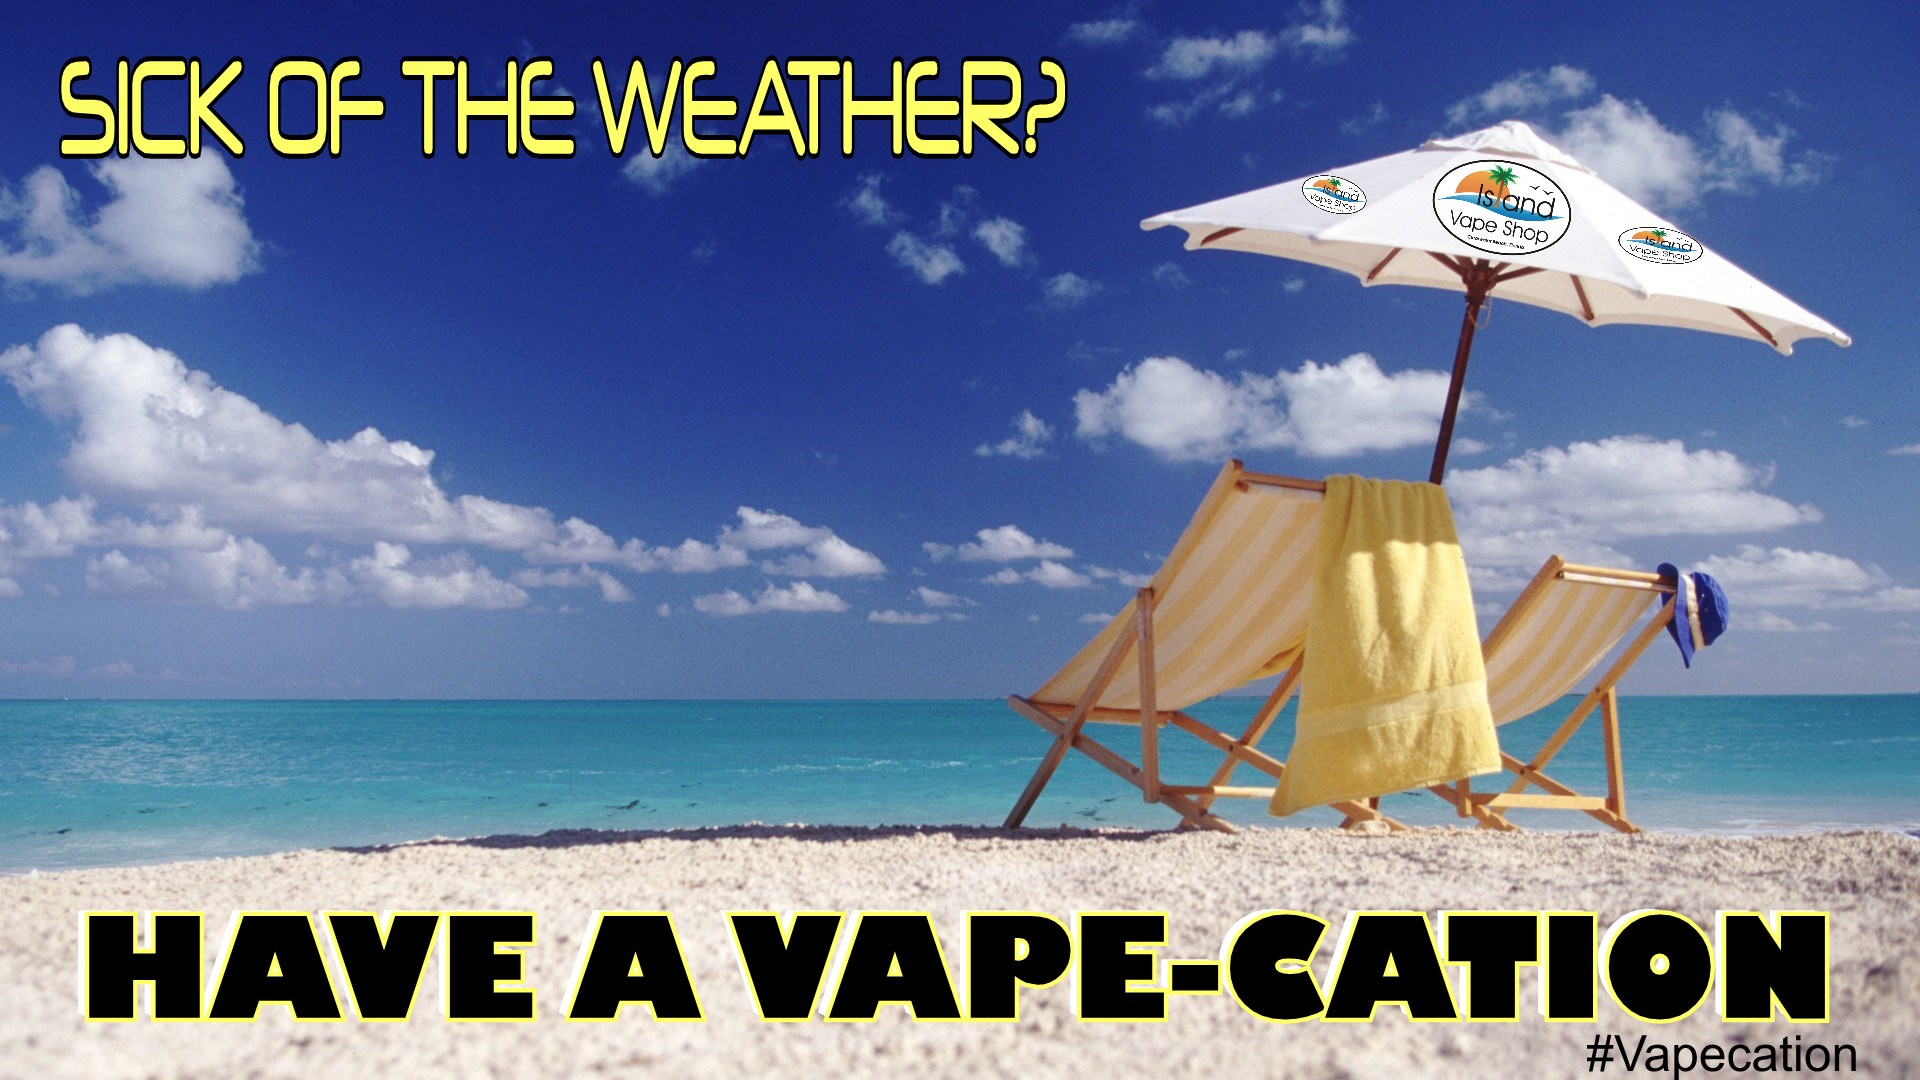 island_vape_shop_clearwater_beach_vape_vacation_vapecation_florida_tampa_bay_vaping_tampa_bay.jpg